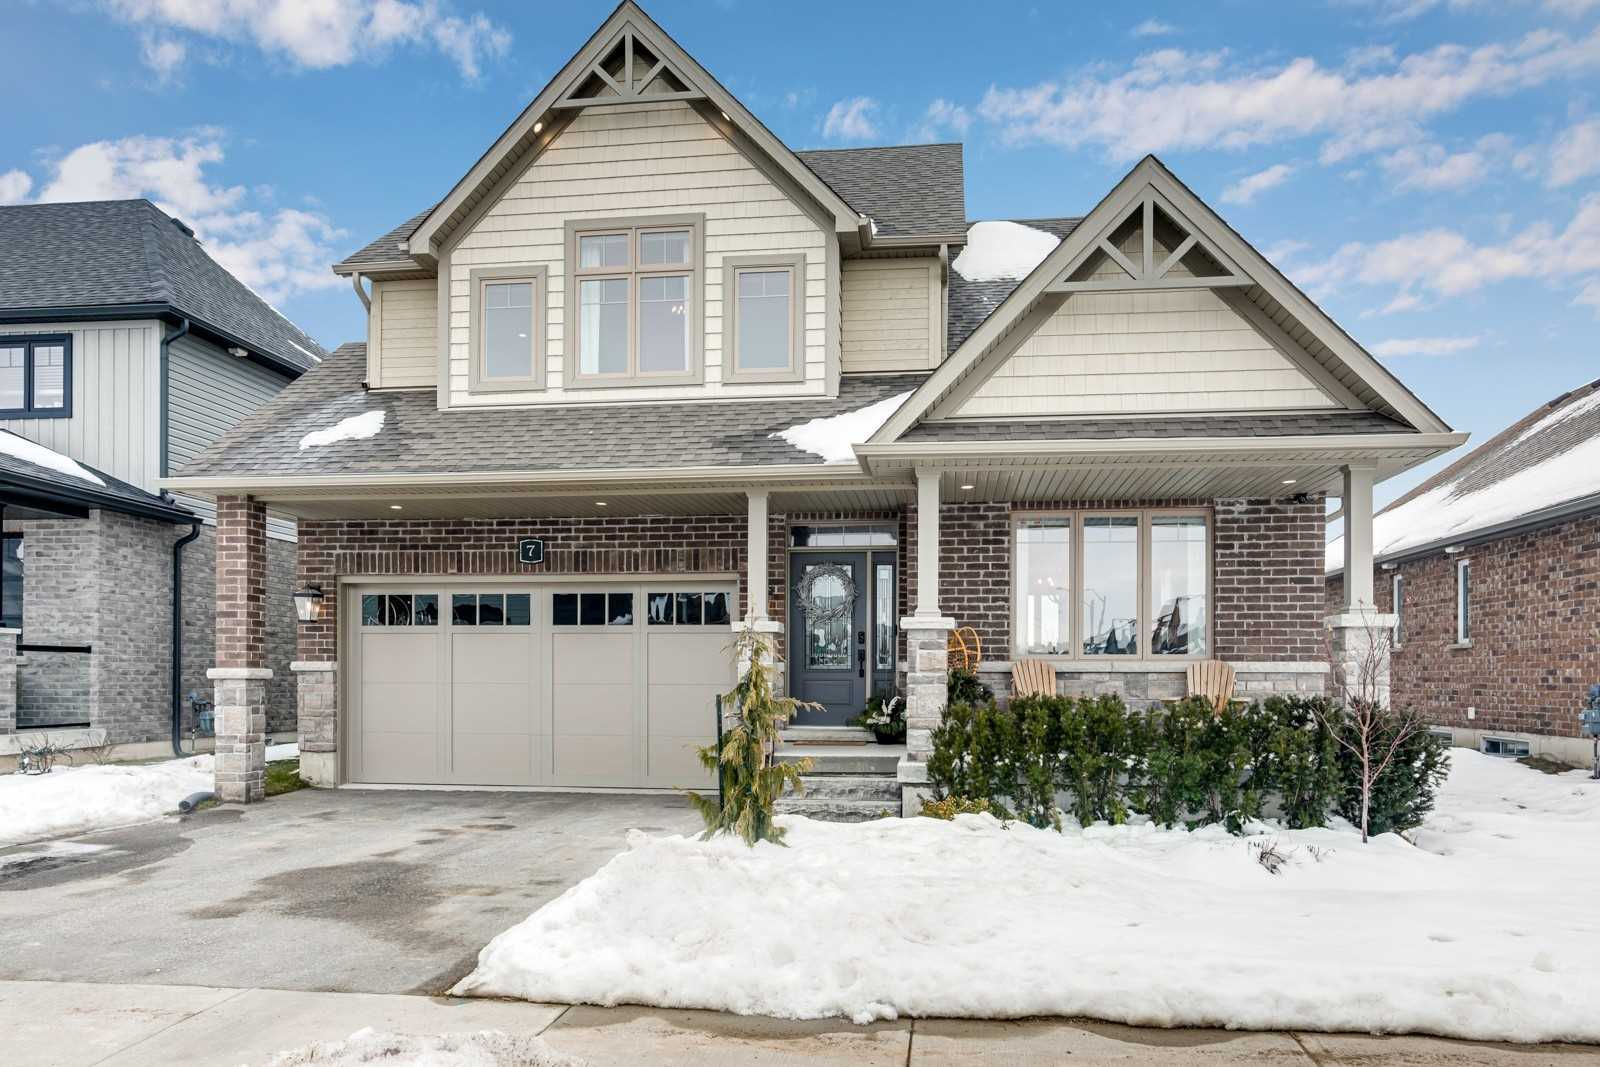 pictures of house for sale MLS: S5089855 located at 7 Portland St, Collingwood L9Y2L3